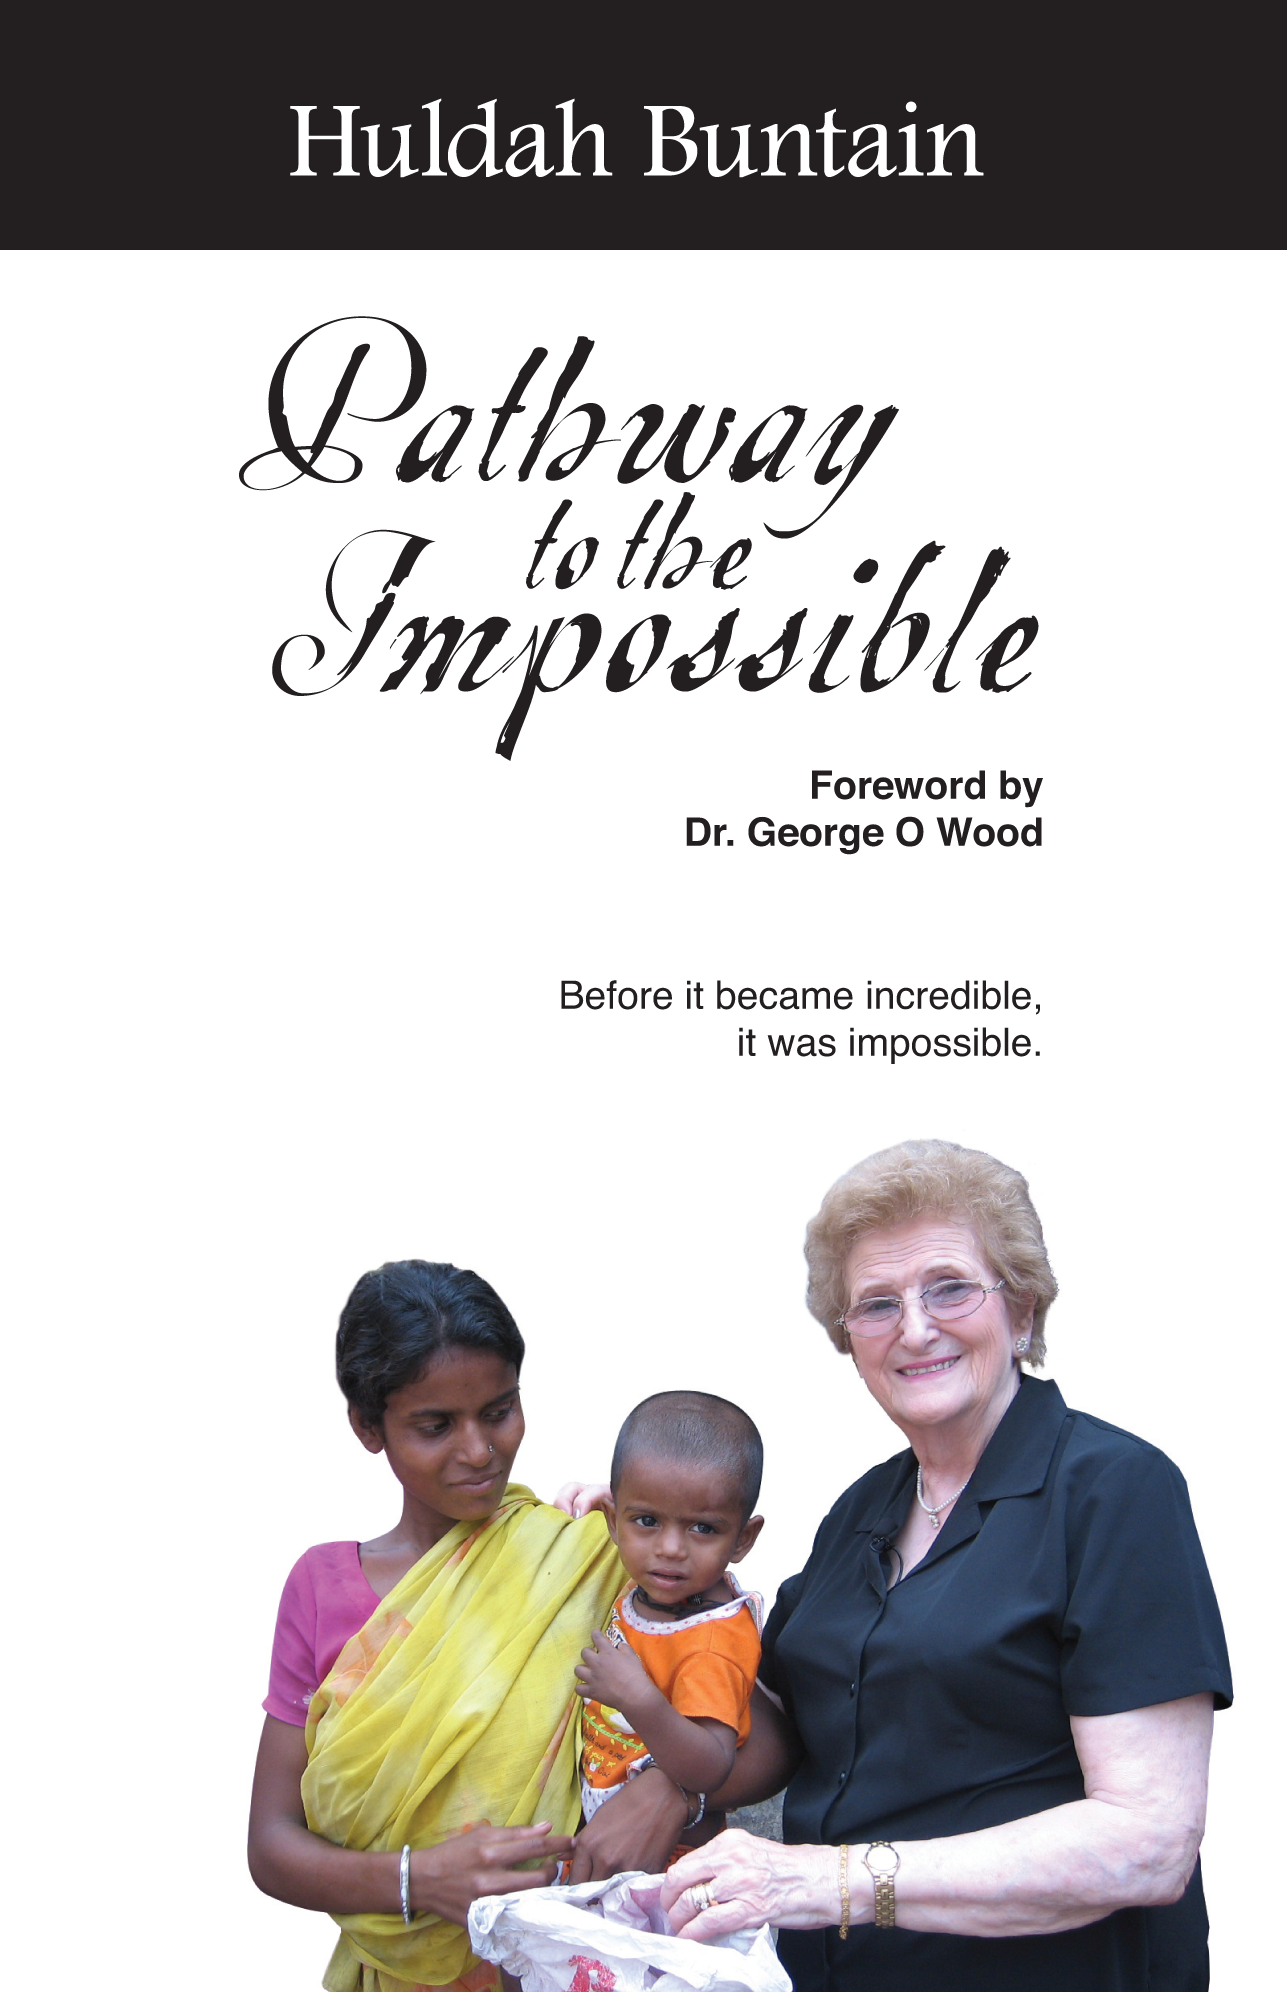 Journey with Calcutta Mercy's founder, Huldah Buntain, as she embarks on a daring mission to bring life-changing care to a city entrenched in poverty.